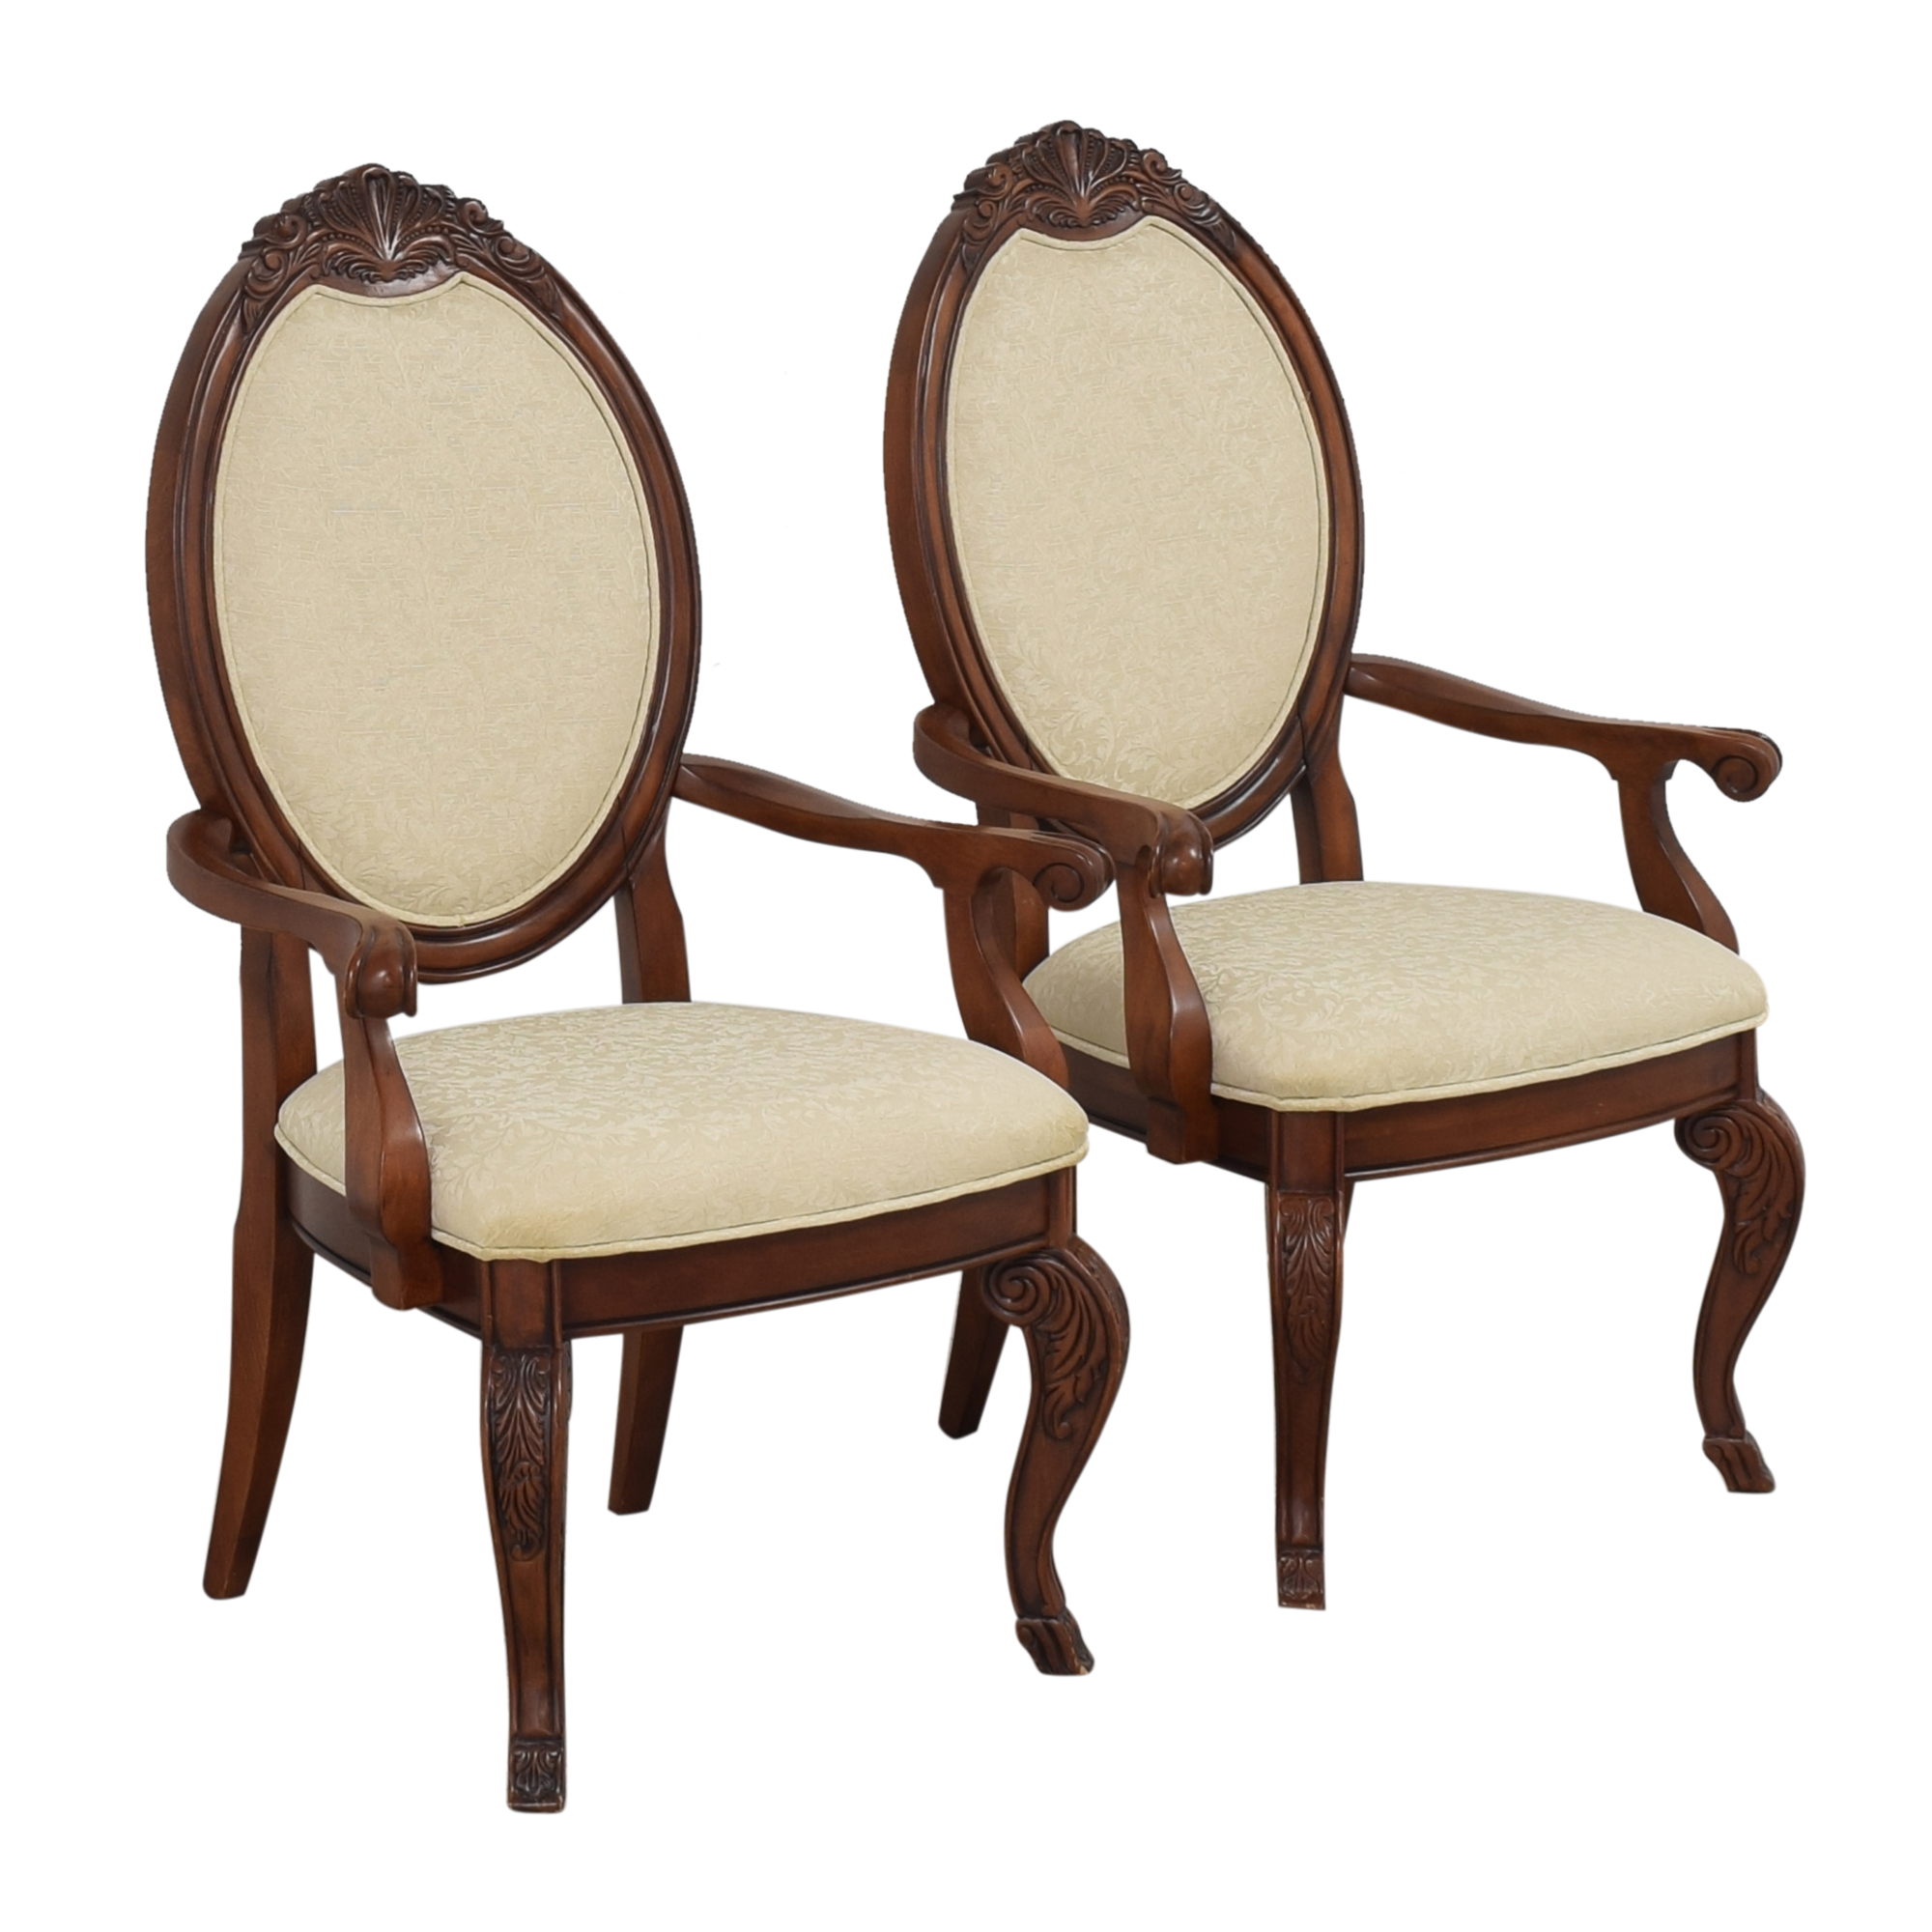 Raymour & Flanigan Oval Back Dining Arm Chairs Raymour & Flanigan